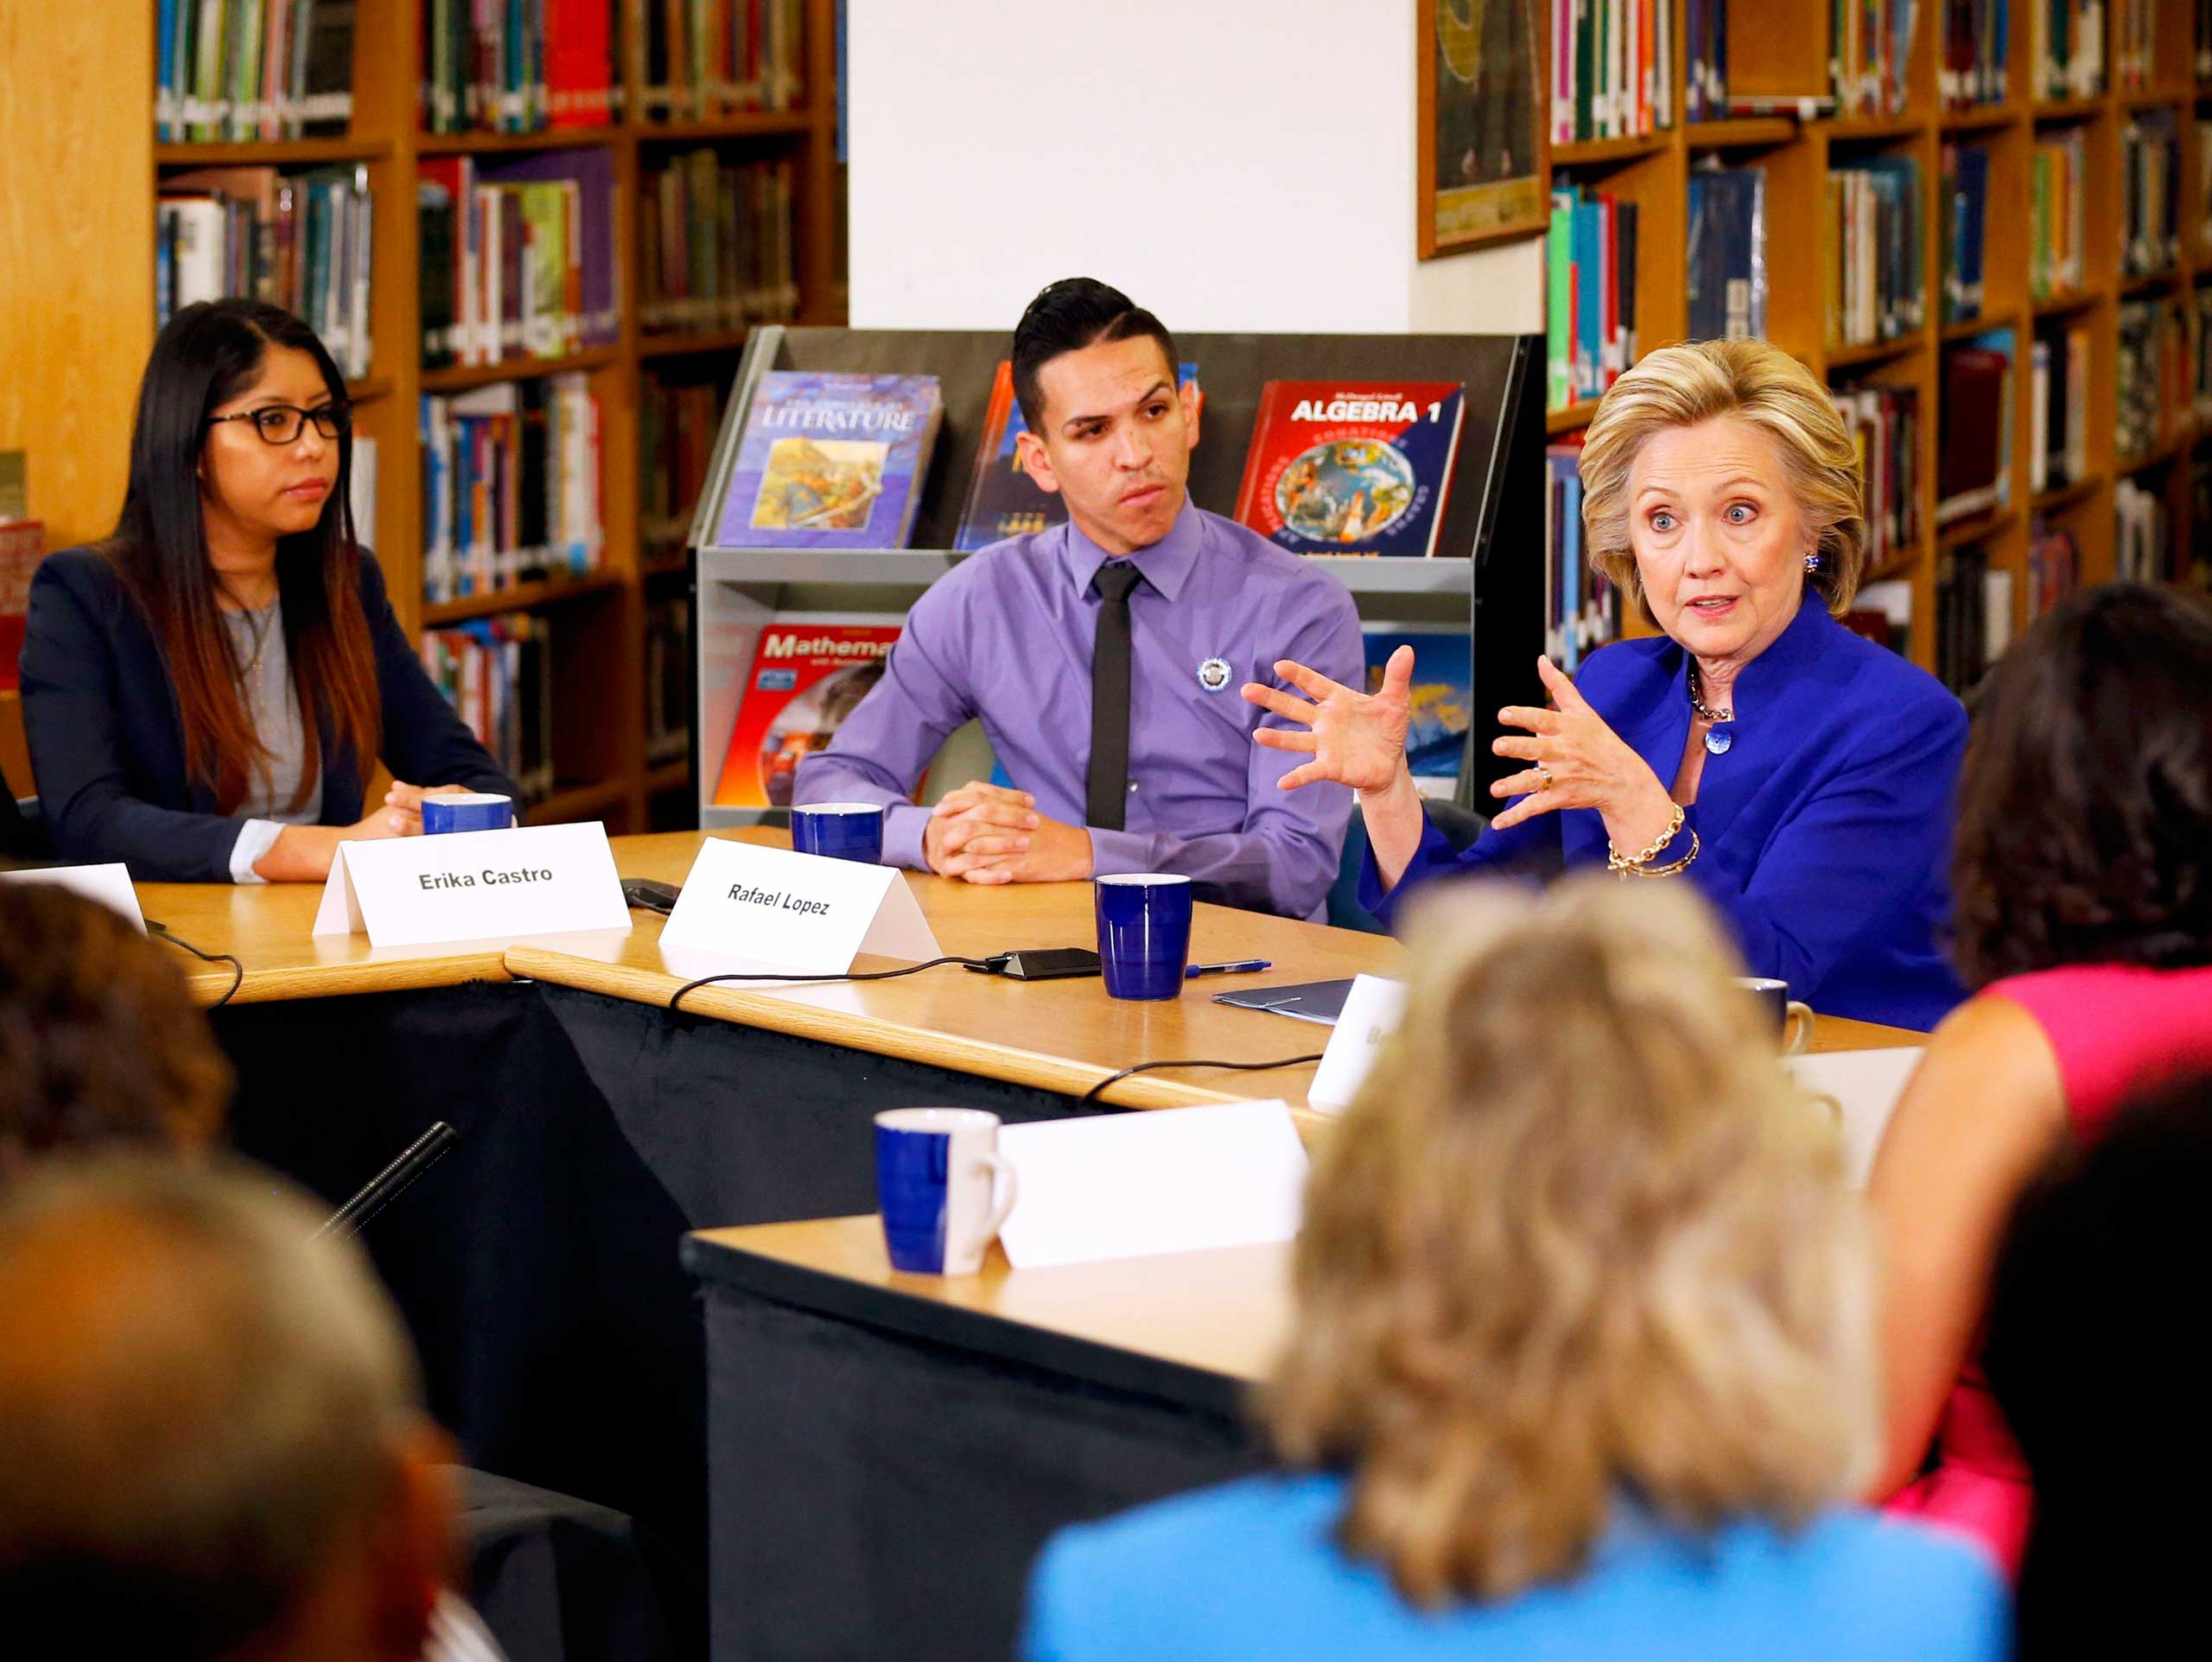 Las Vegas, NV - May 5: Clinton discussed immigration with a roundtable in Las Vegas, Nevada, a primary state with a heavy population of Hispanic immigrants, calling for a path to citizenship for undocumented immigrants.